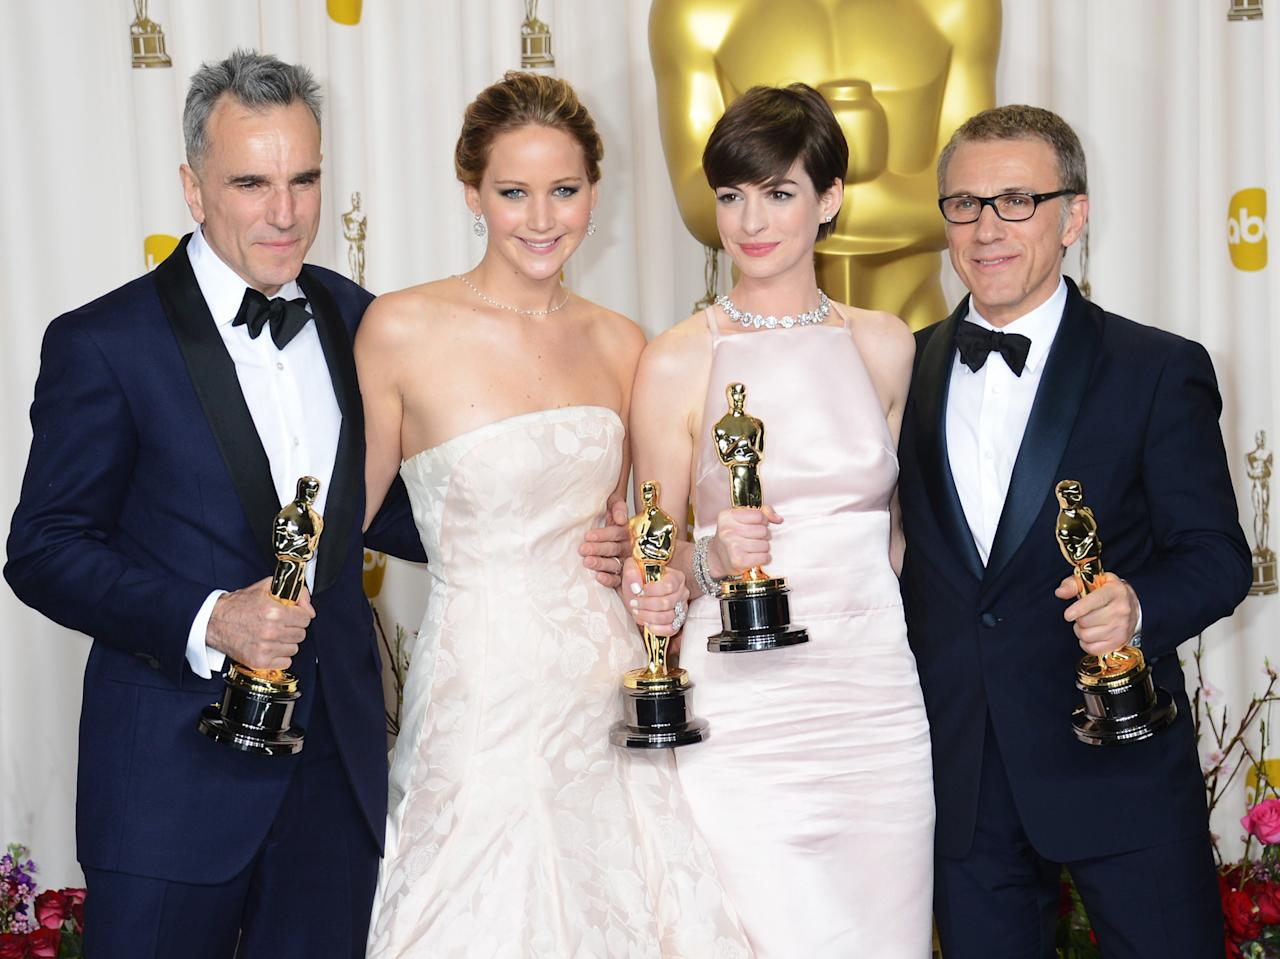 (L-R) Actors Daniel Day-Lews, Jennifer Lawrence, Anne Hathaway, and Christoph Waltz pose in the press room during the Oscars at Loews Hollywood Hotel on February 24, 2013 in Hollywood, California.  (Photo by Jeff Kravitz/FilmMagic)